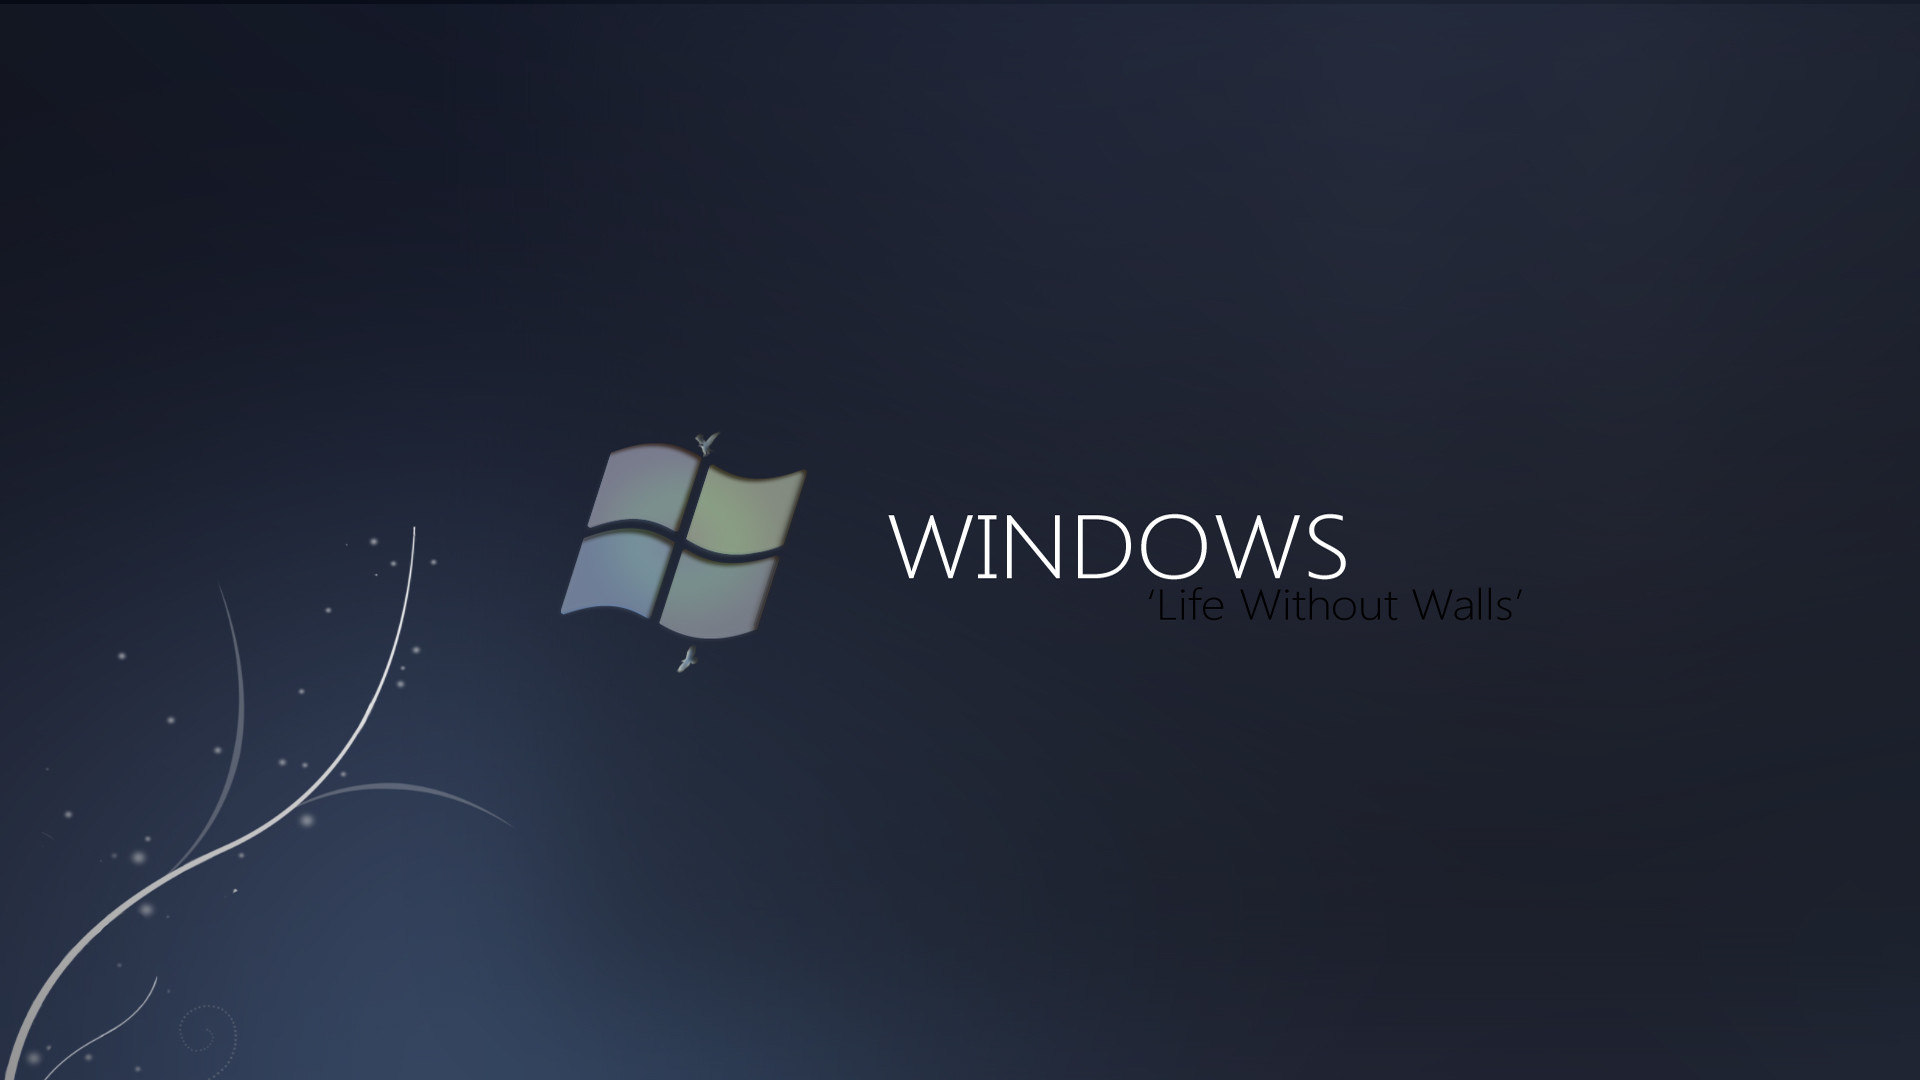 Windows Server Wallpaper 69 Images